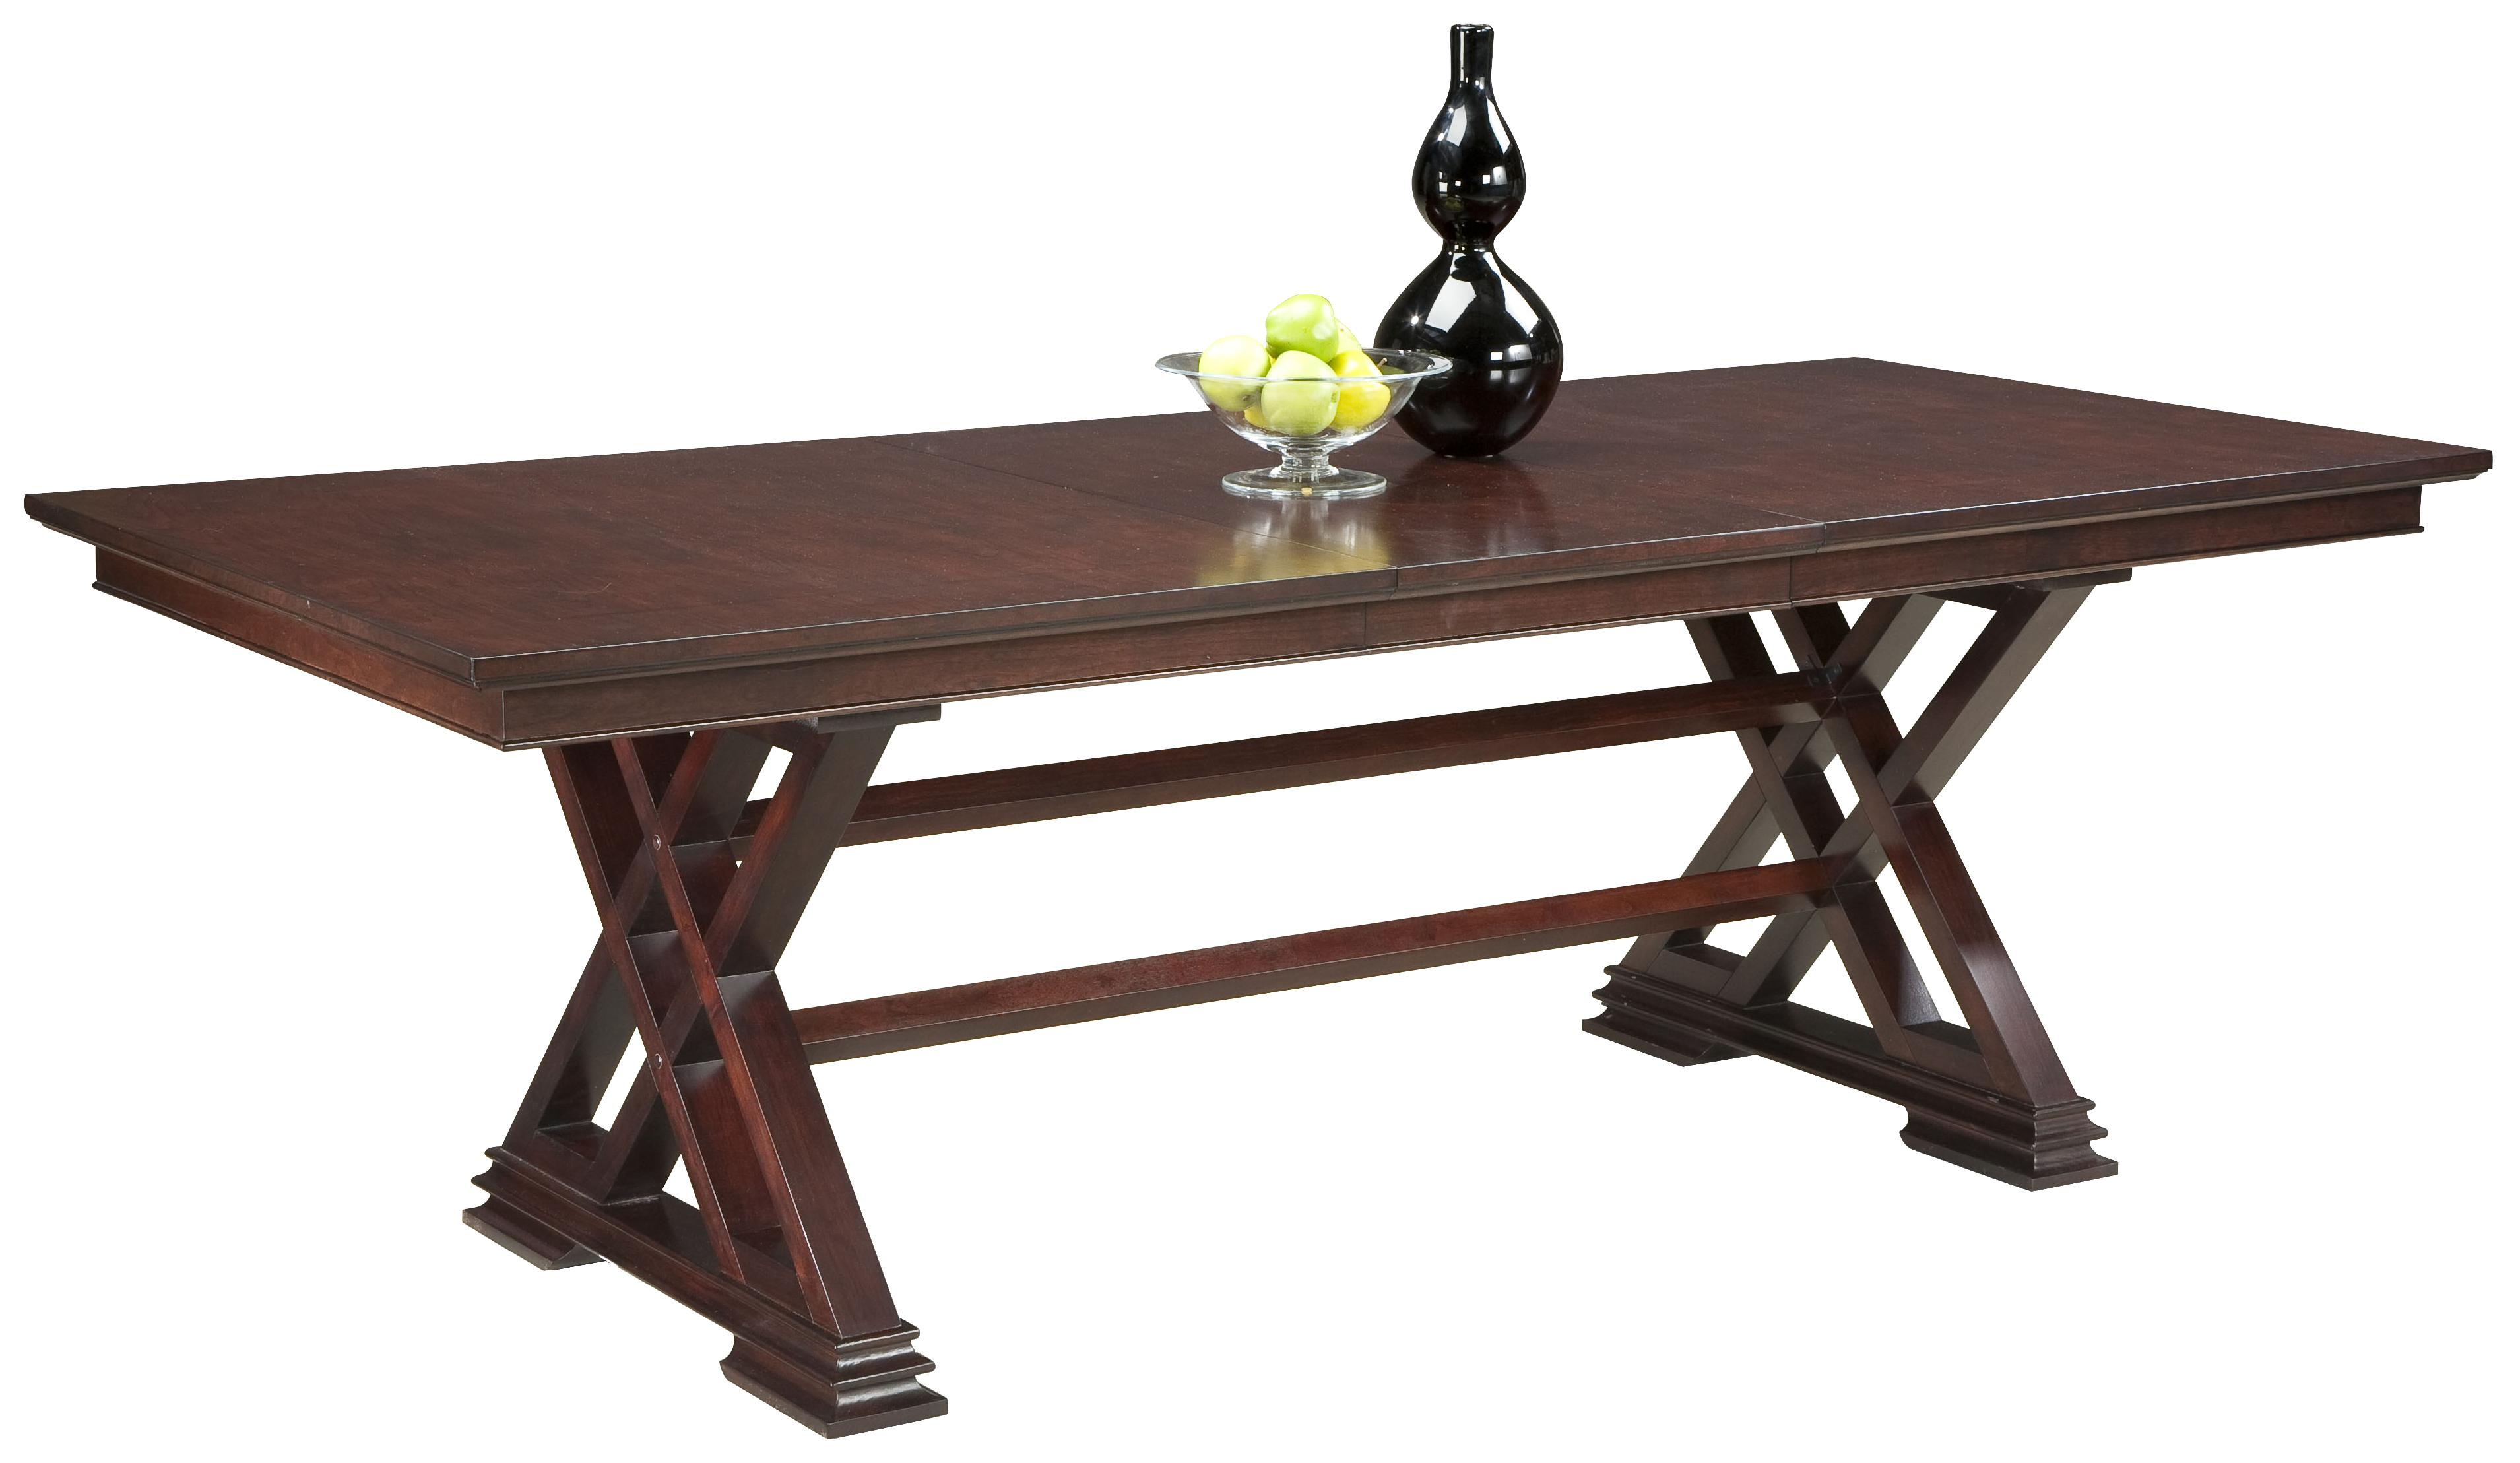 Fairfield Tables Formal Dining Room Table in Trestle Style  : products2Ffairfield2Fcolor2Ftables2018120 43 b2 from www.jacksonvillefurnituremart.com size 3819 x 2217 jpeg 371kB